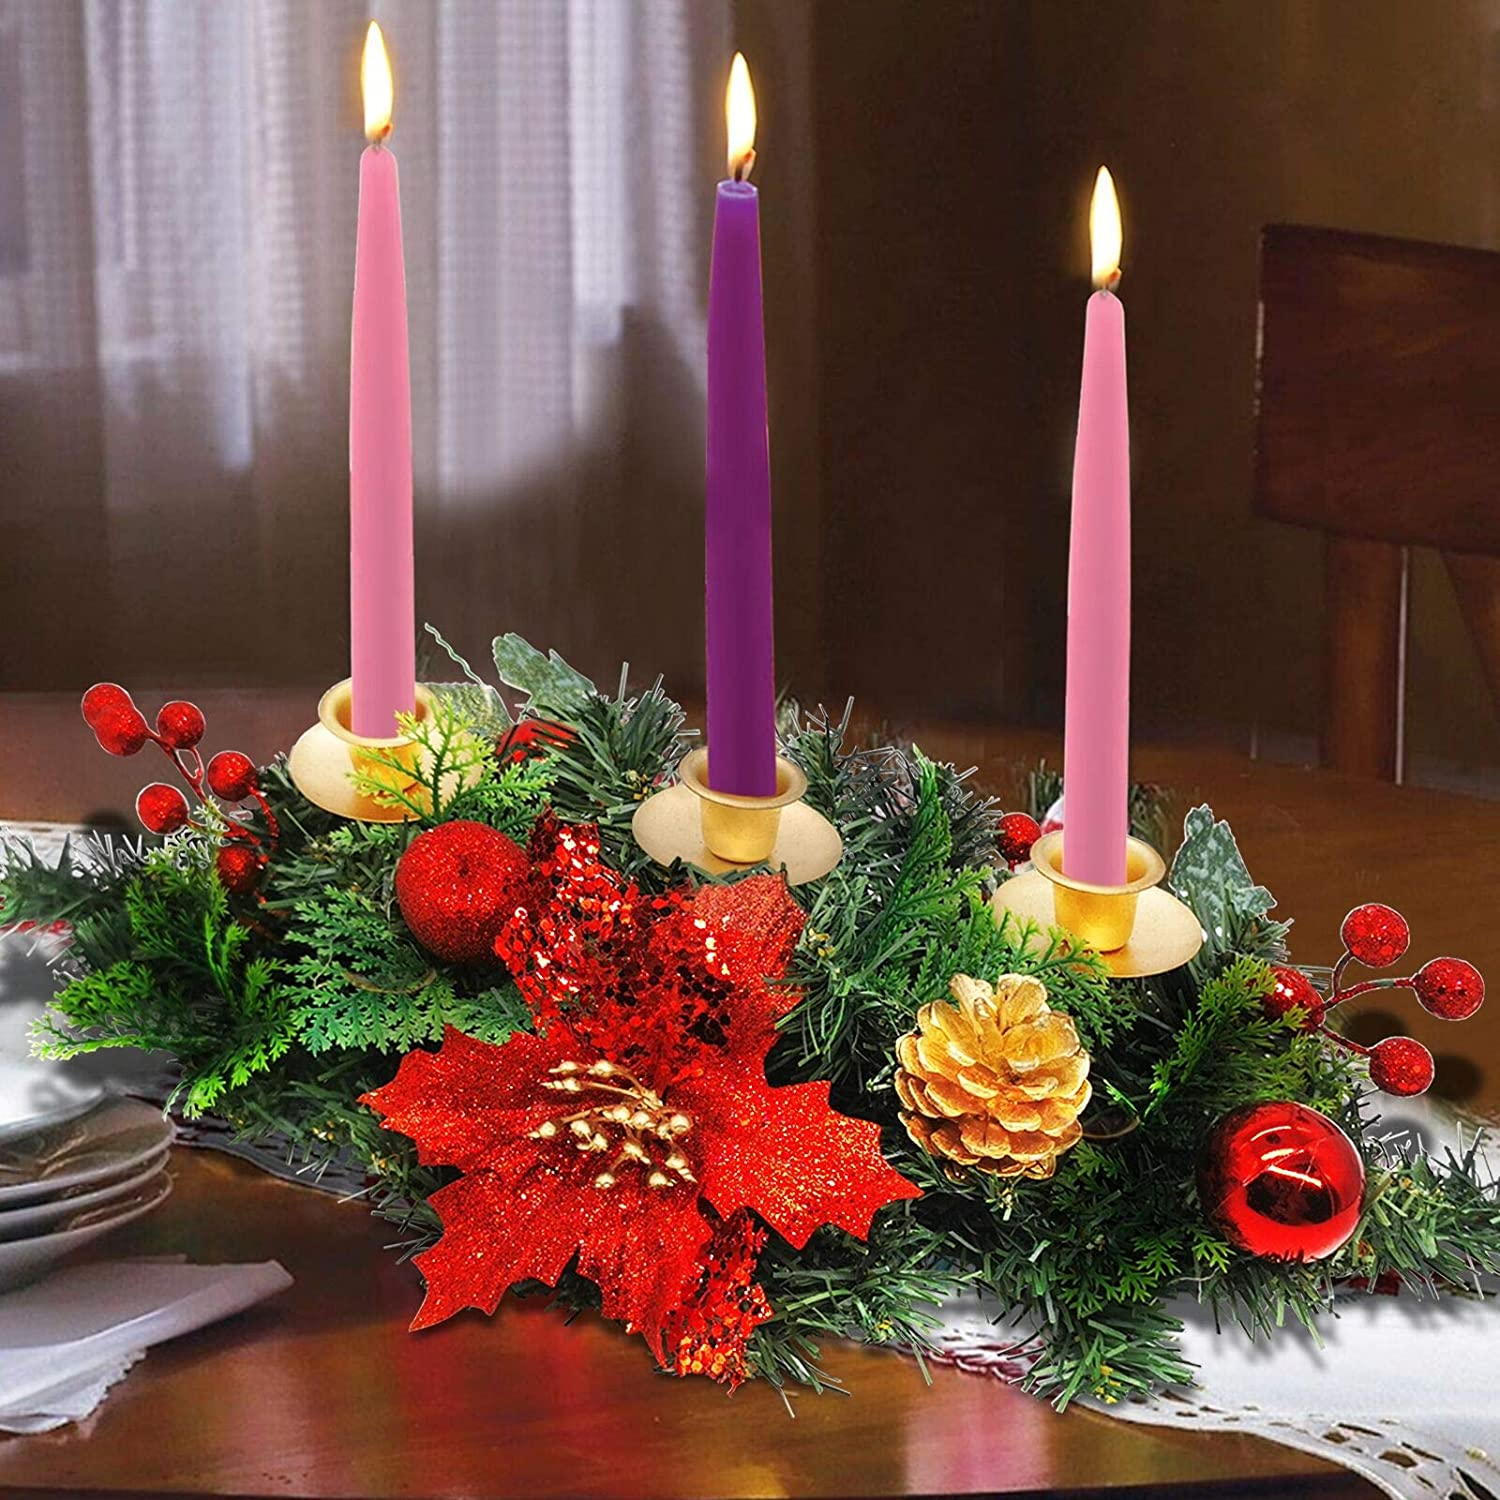 20 Inch Christmas Advent Wreath Christmas Decoration Oval 3 Candles Holder with Glitter Sequin Poinsettia Red Berries Ball Ivy Leaves Shrubs Advent Season Holiday Xmas Decor Indoor Home